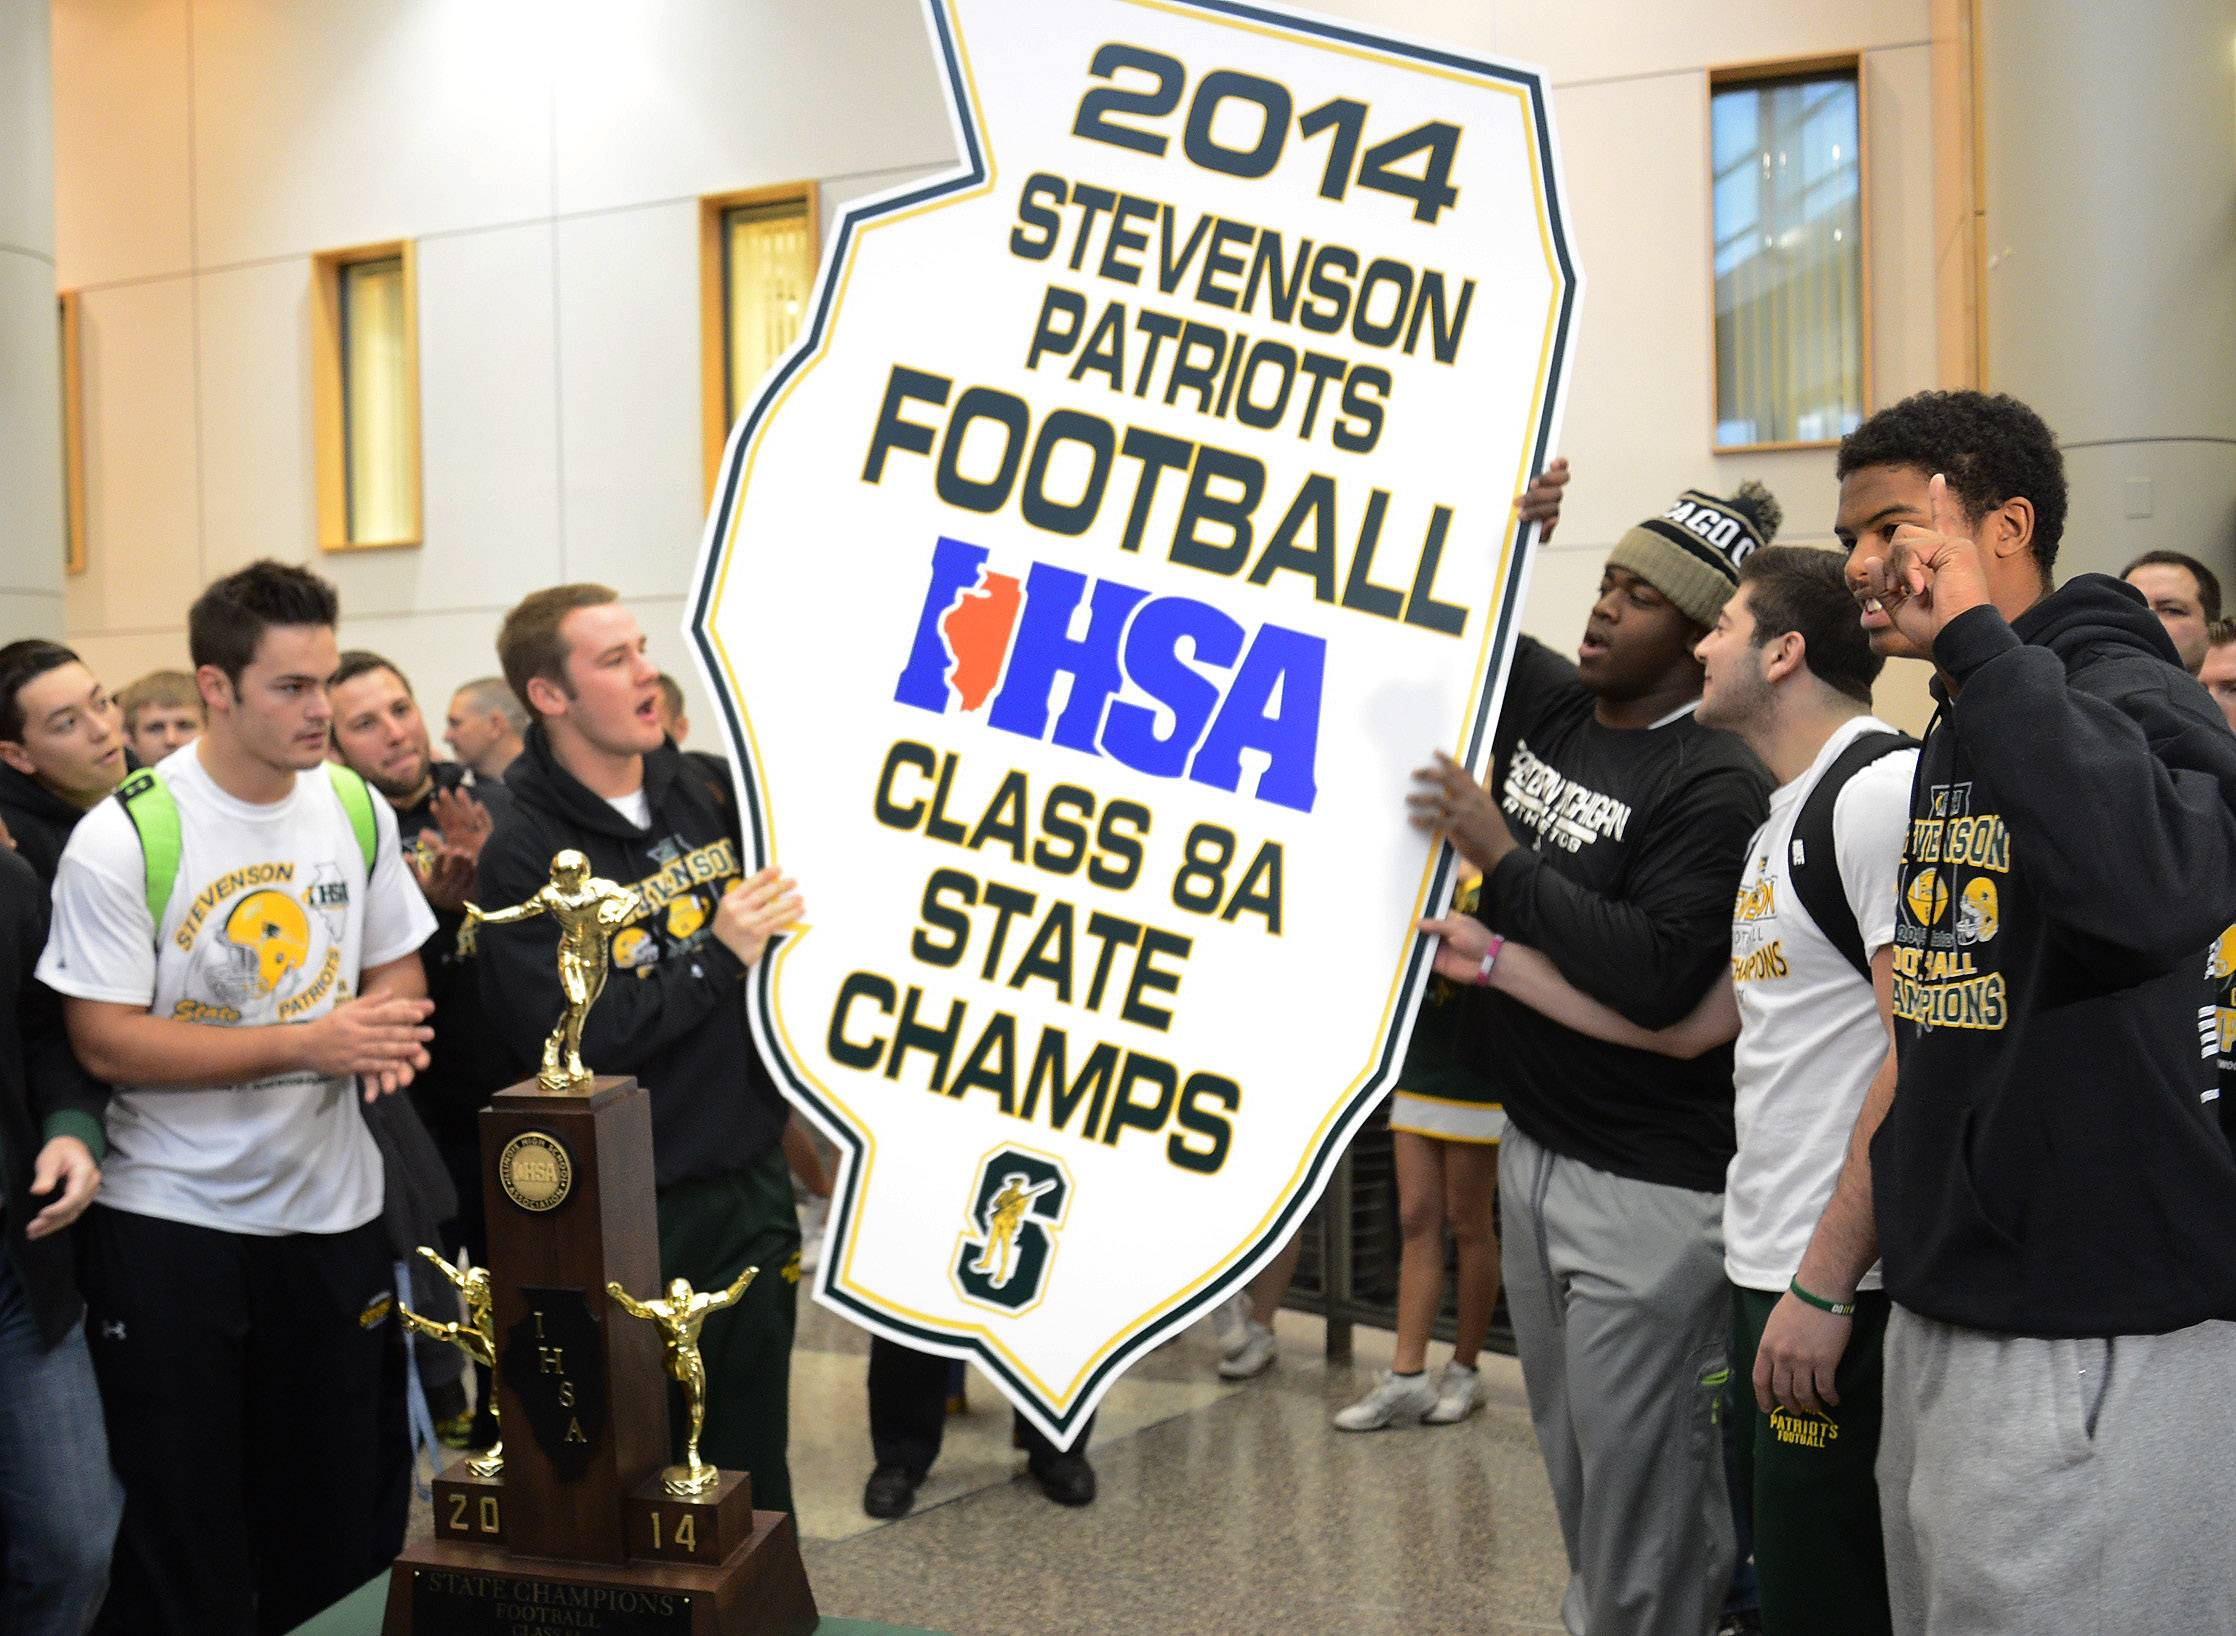 From left seniors, Jason Vravick, Willie Bourbon, Nick Dillon, Jack Joseph and Cameron Green celebrate with trophy and state plaque as Stevenson High School celebrates winning the state Class 8A football championship.